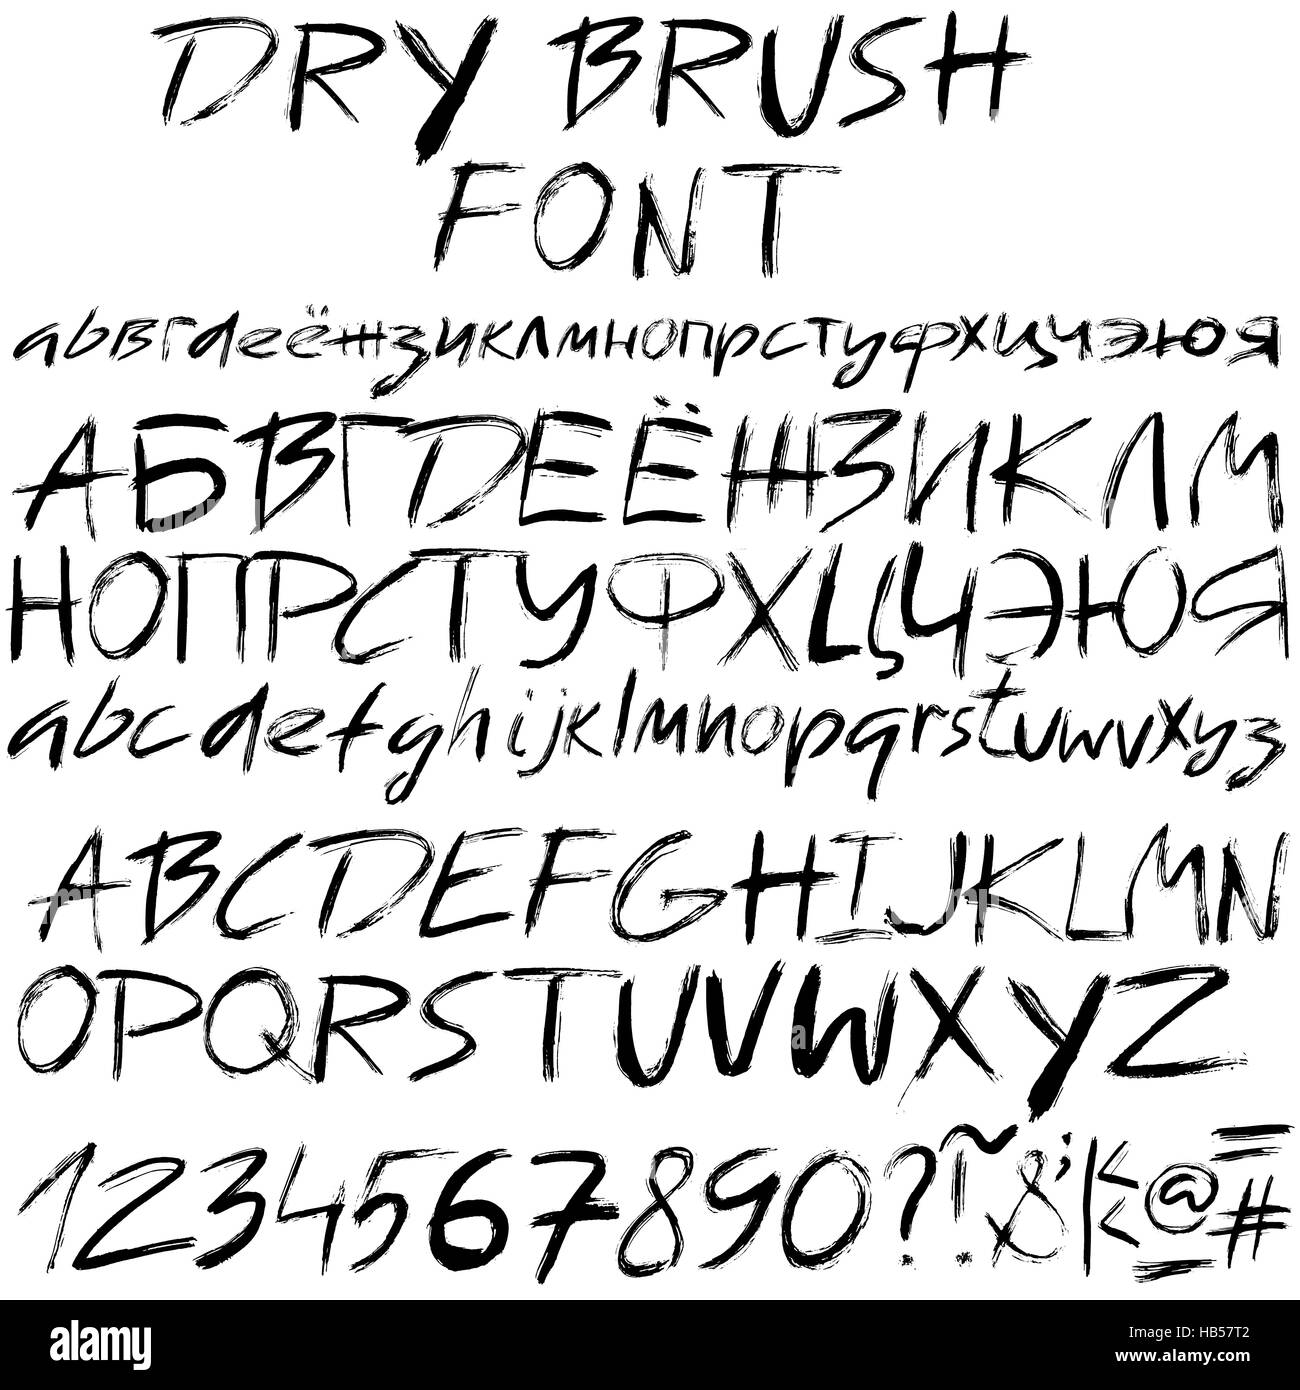 Hand Drawn Font Made By Dry Brush Strokes Roman And Latin Grunge Style Alphabet